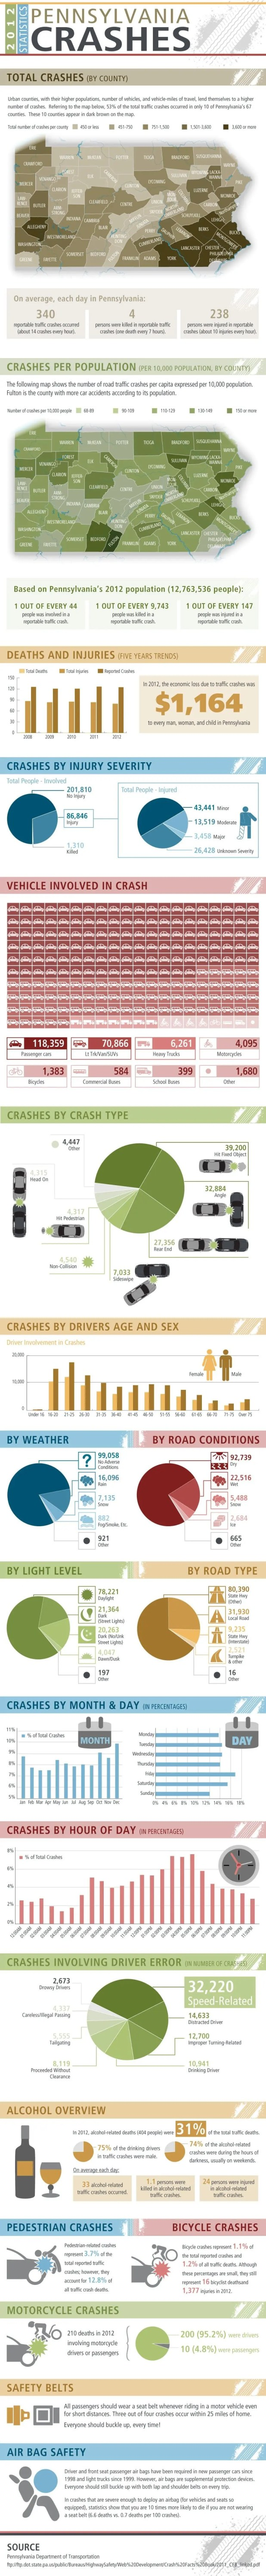 Infographic: Car Accidents Pennsylvania Statistics